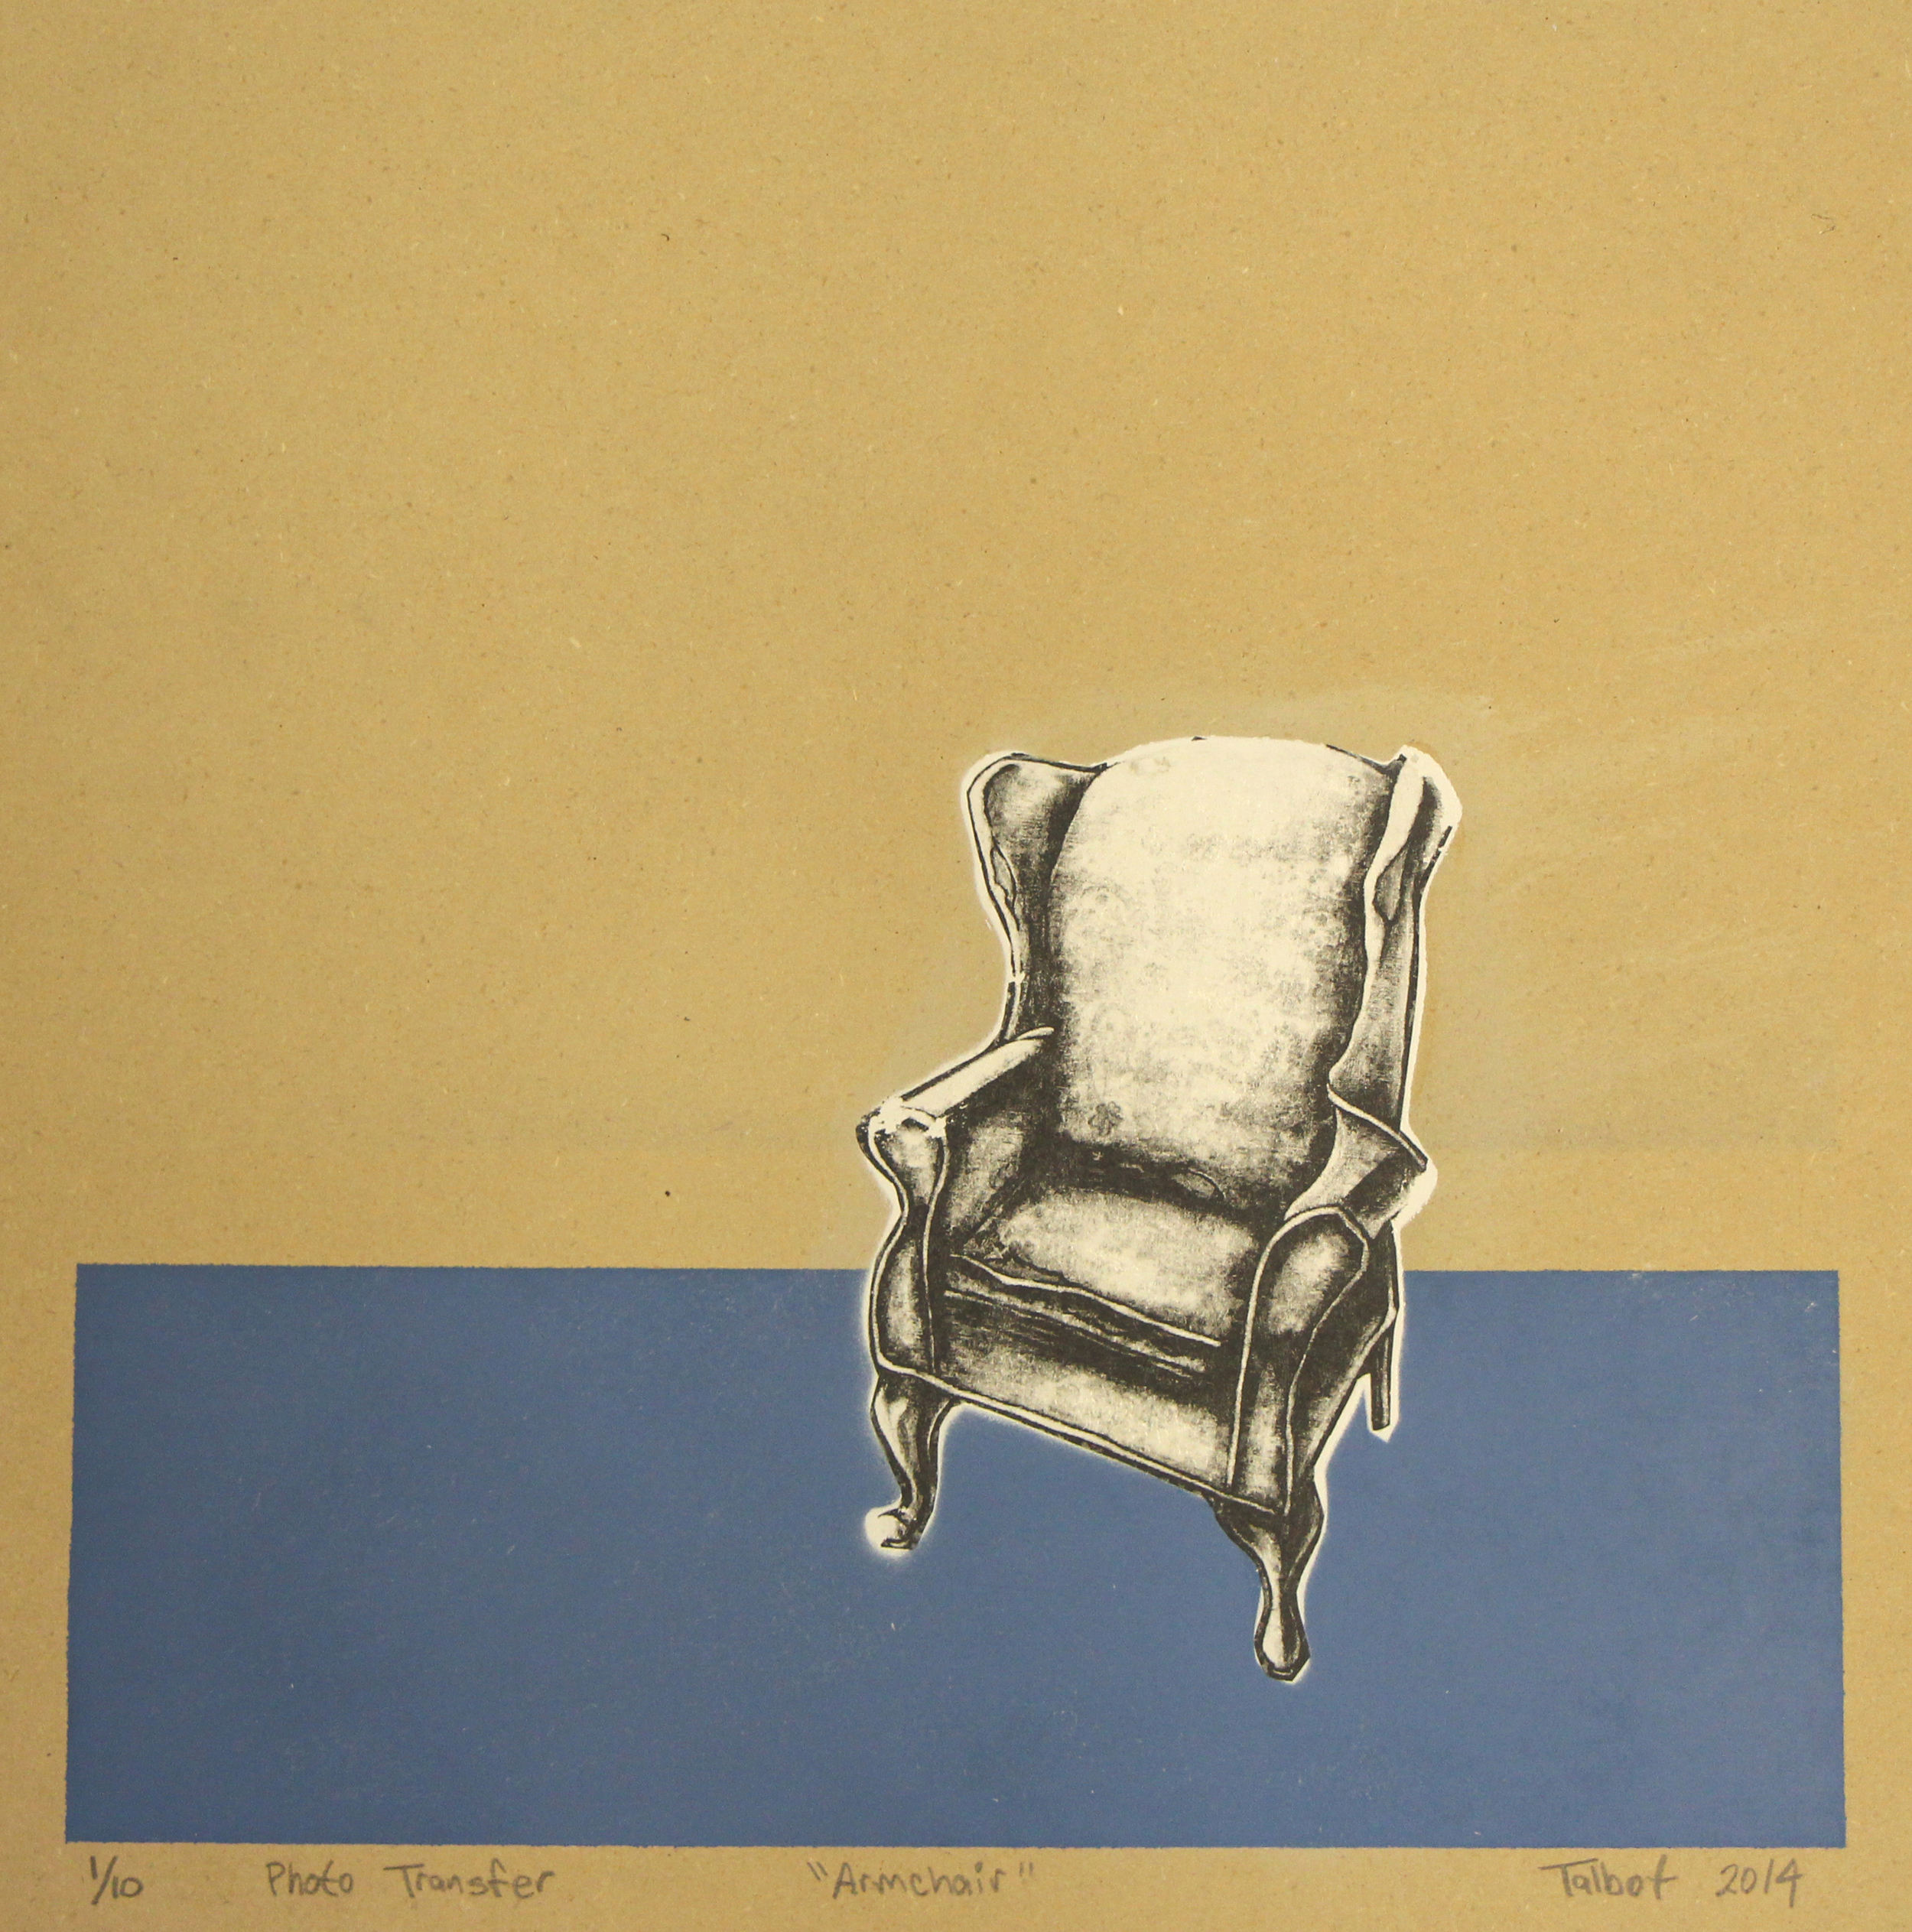 Ryan Talbot    Armchair, 2014  spray paint and photo transfer on panel  16 x 16 inches  edition of 10